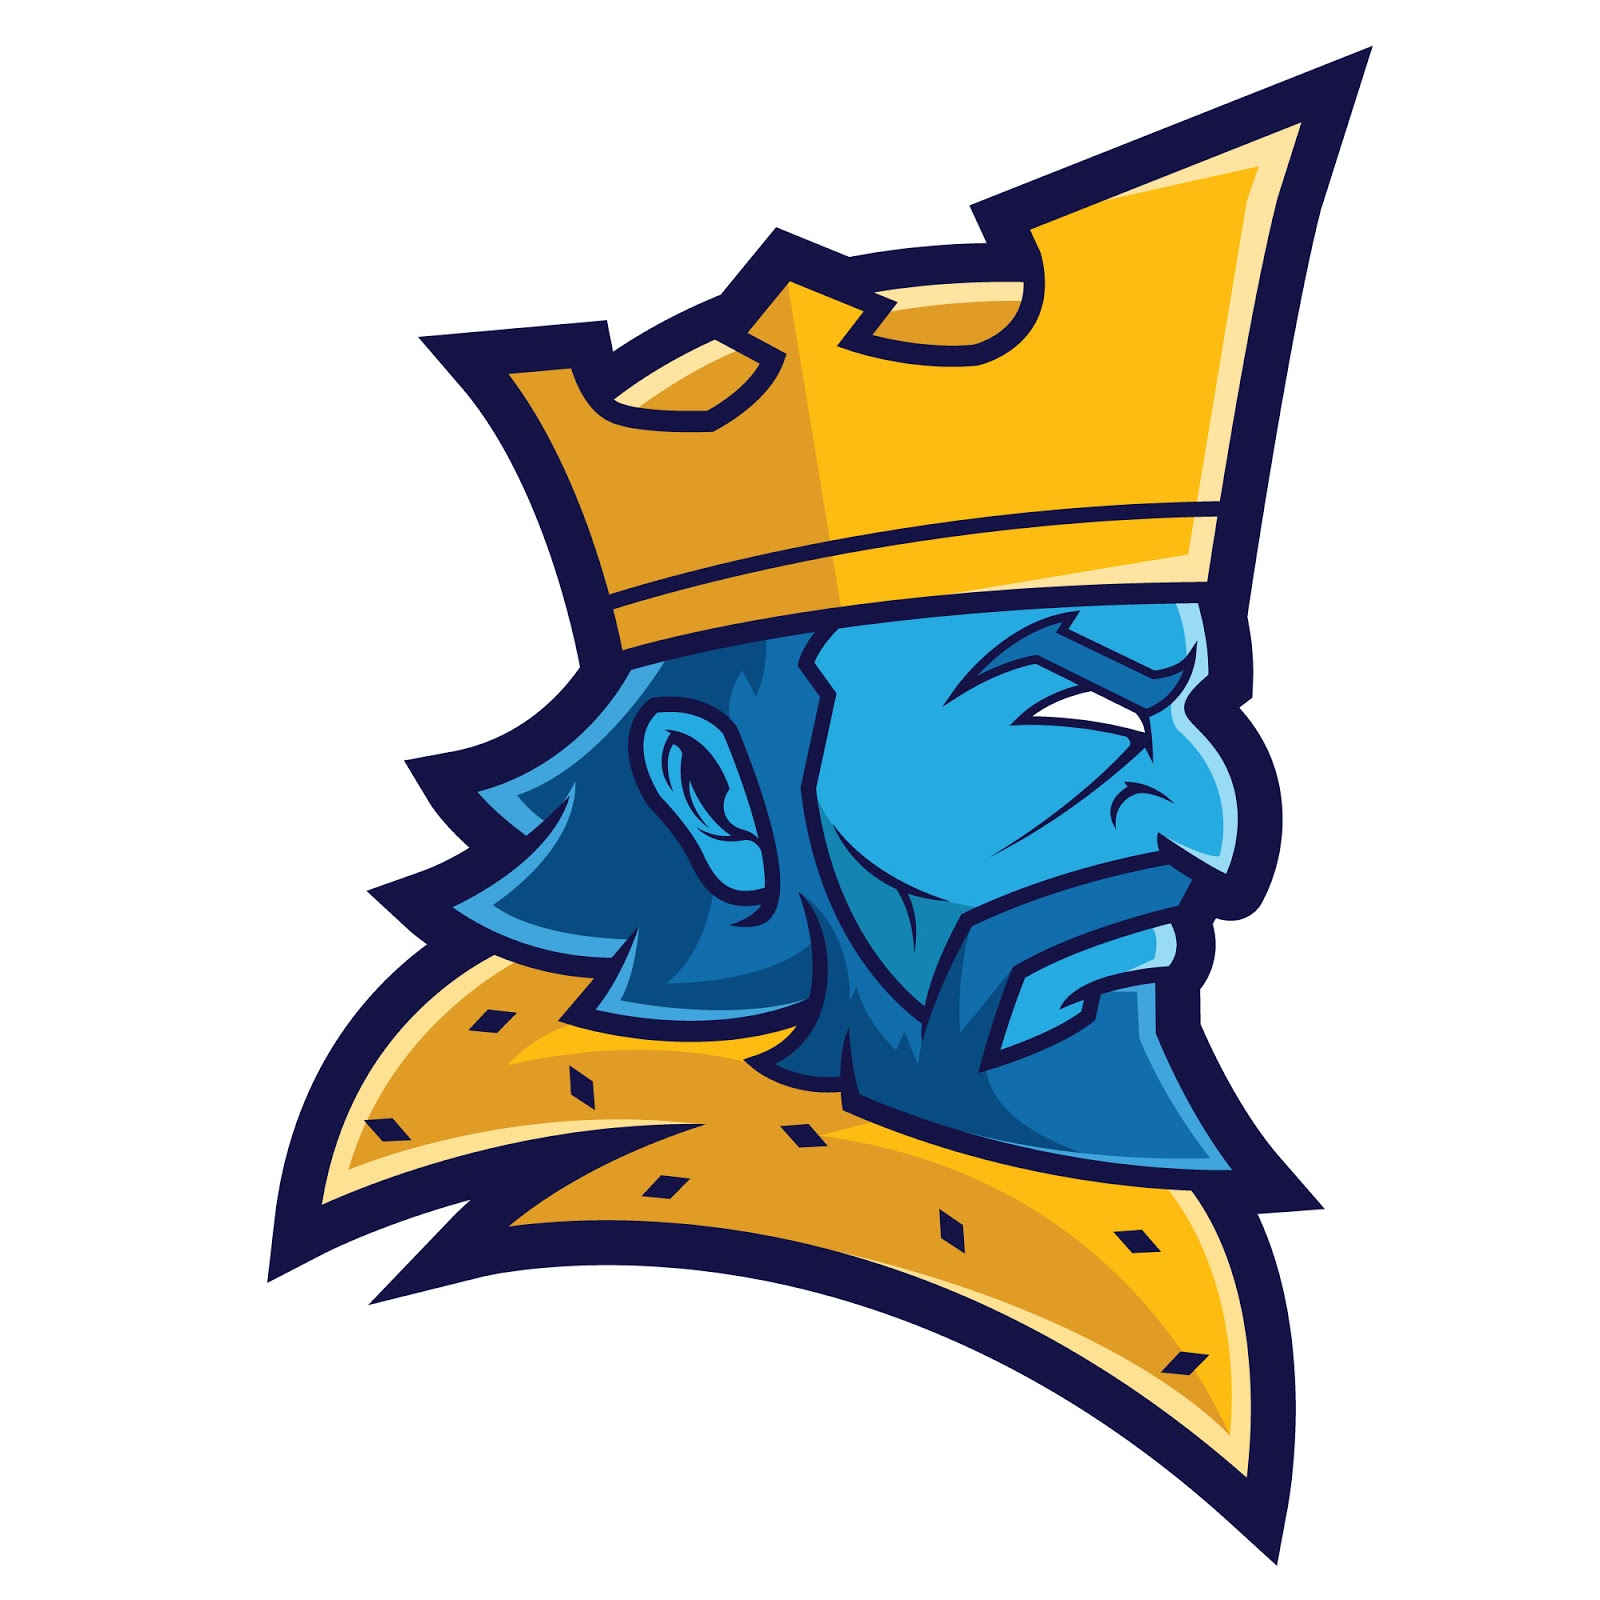 King Sports Logo Free Download Vector CDR, AI, EPS and PNG Formats